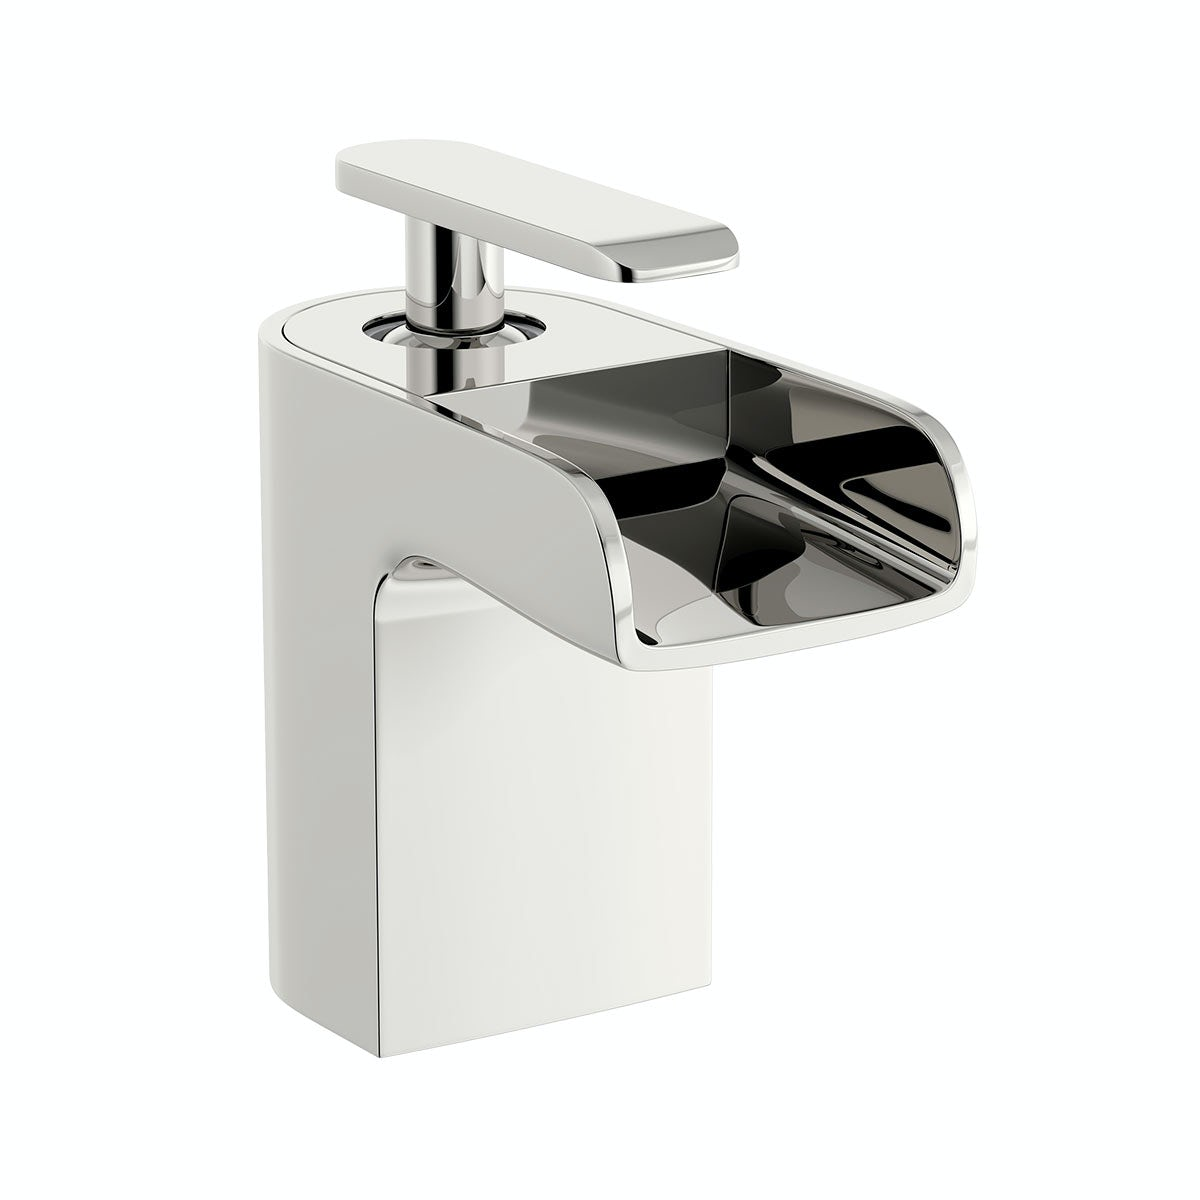 Mode Reinosa waterfall basin mixer tap